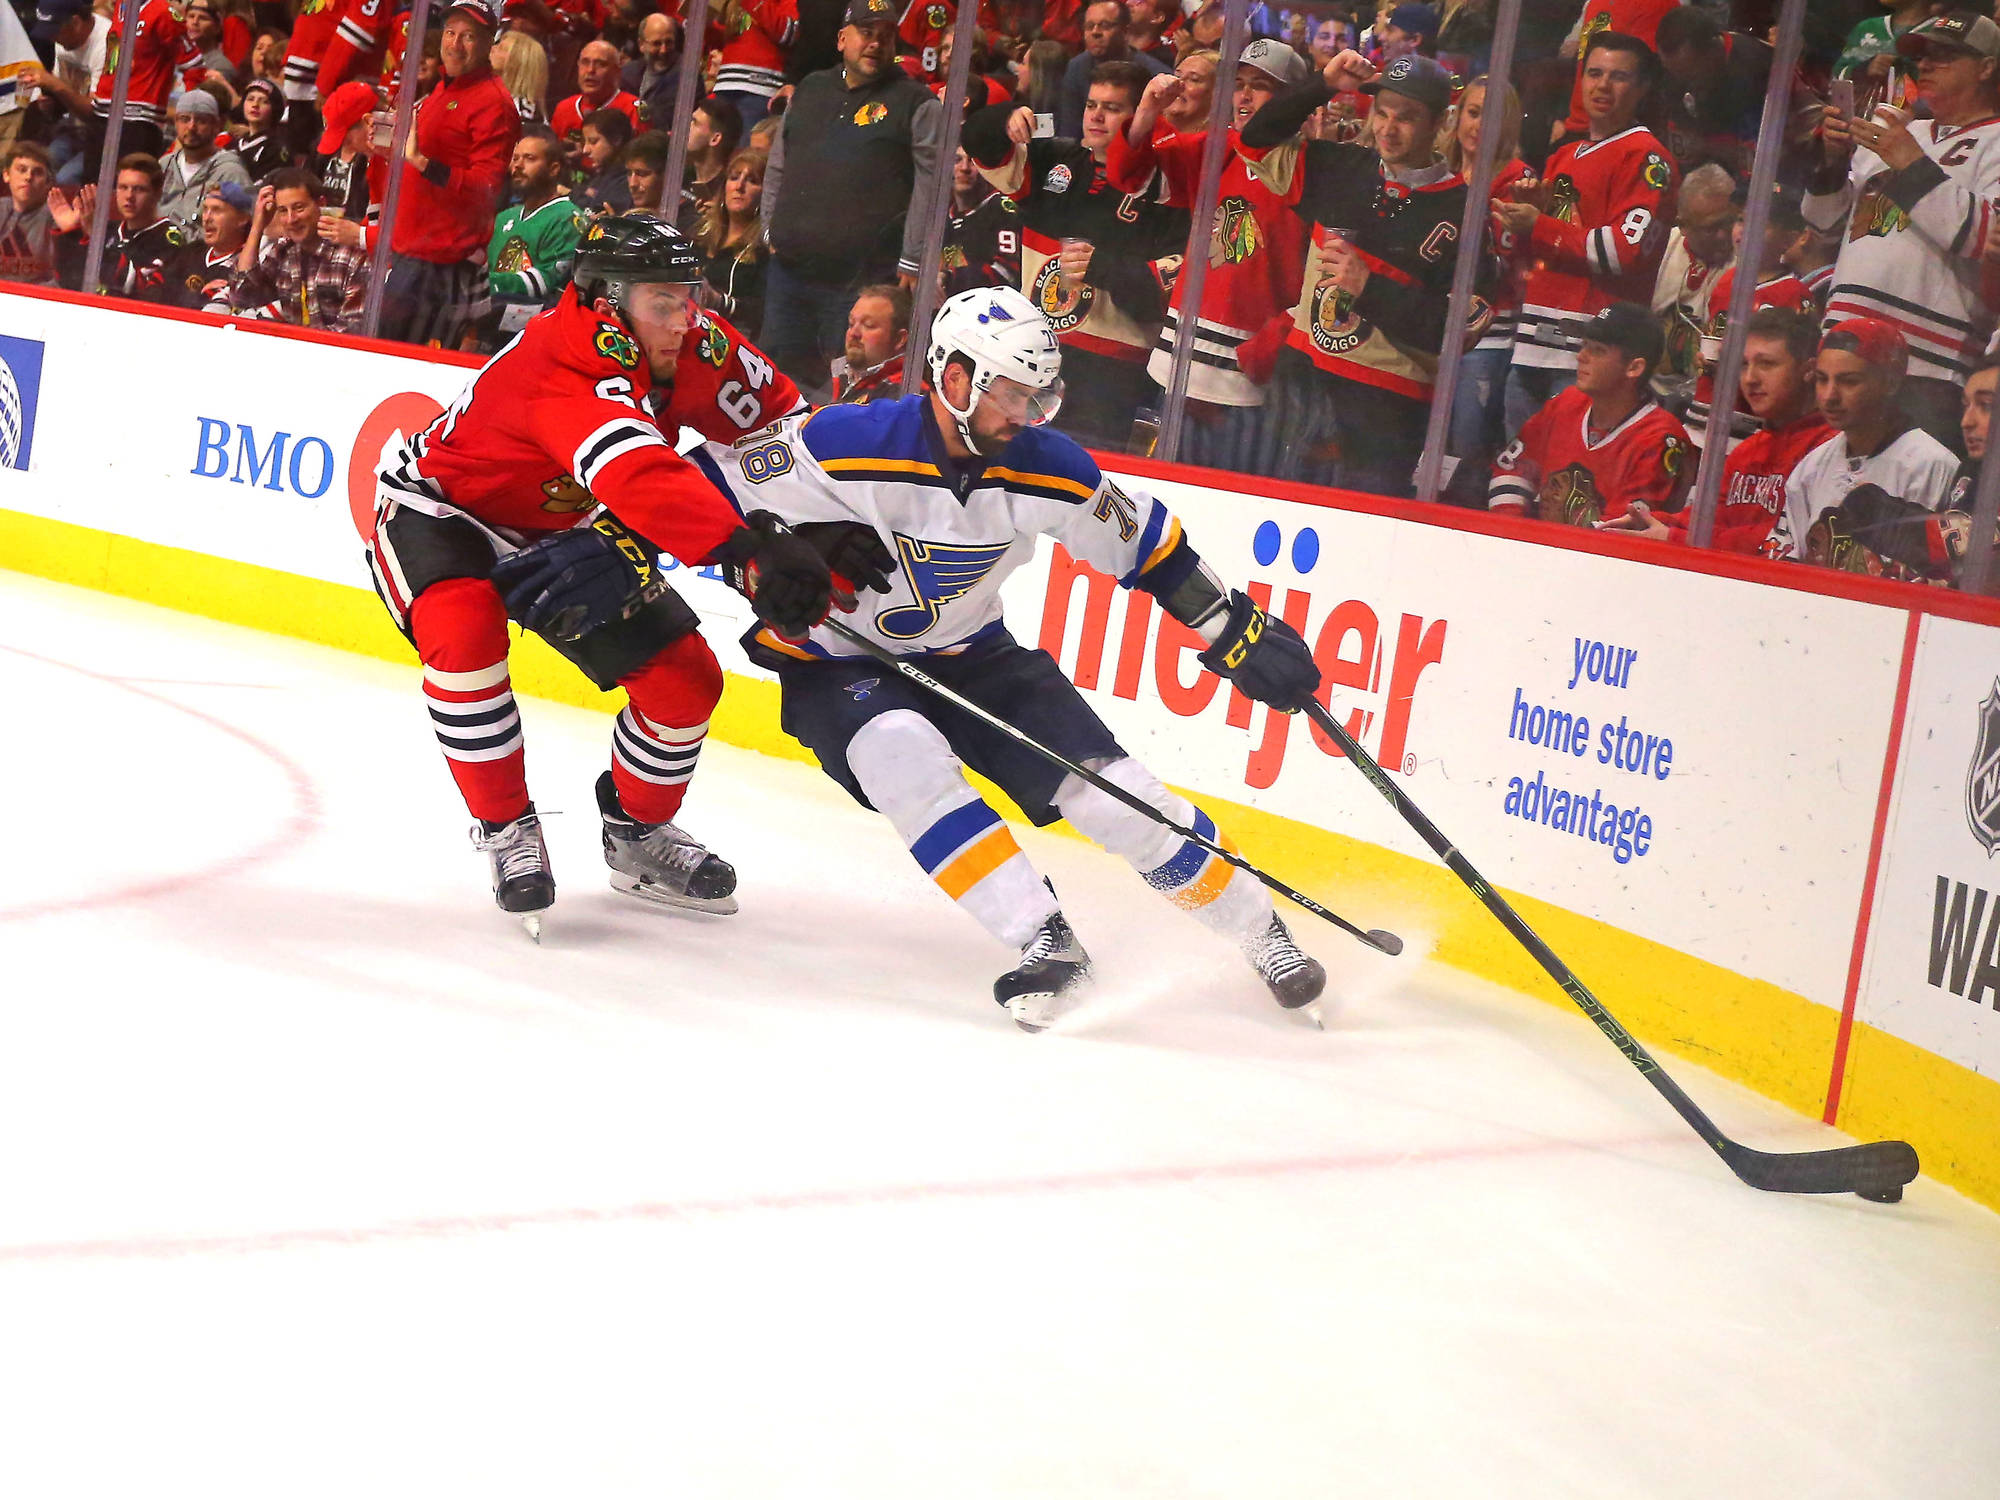 Puck Drops on NHL Season with Blues/Hawks Tilt